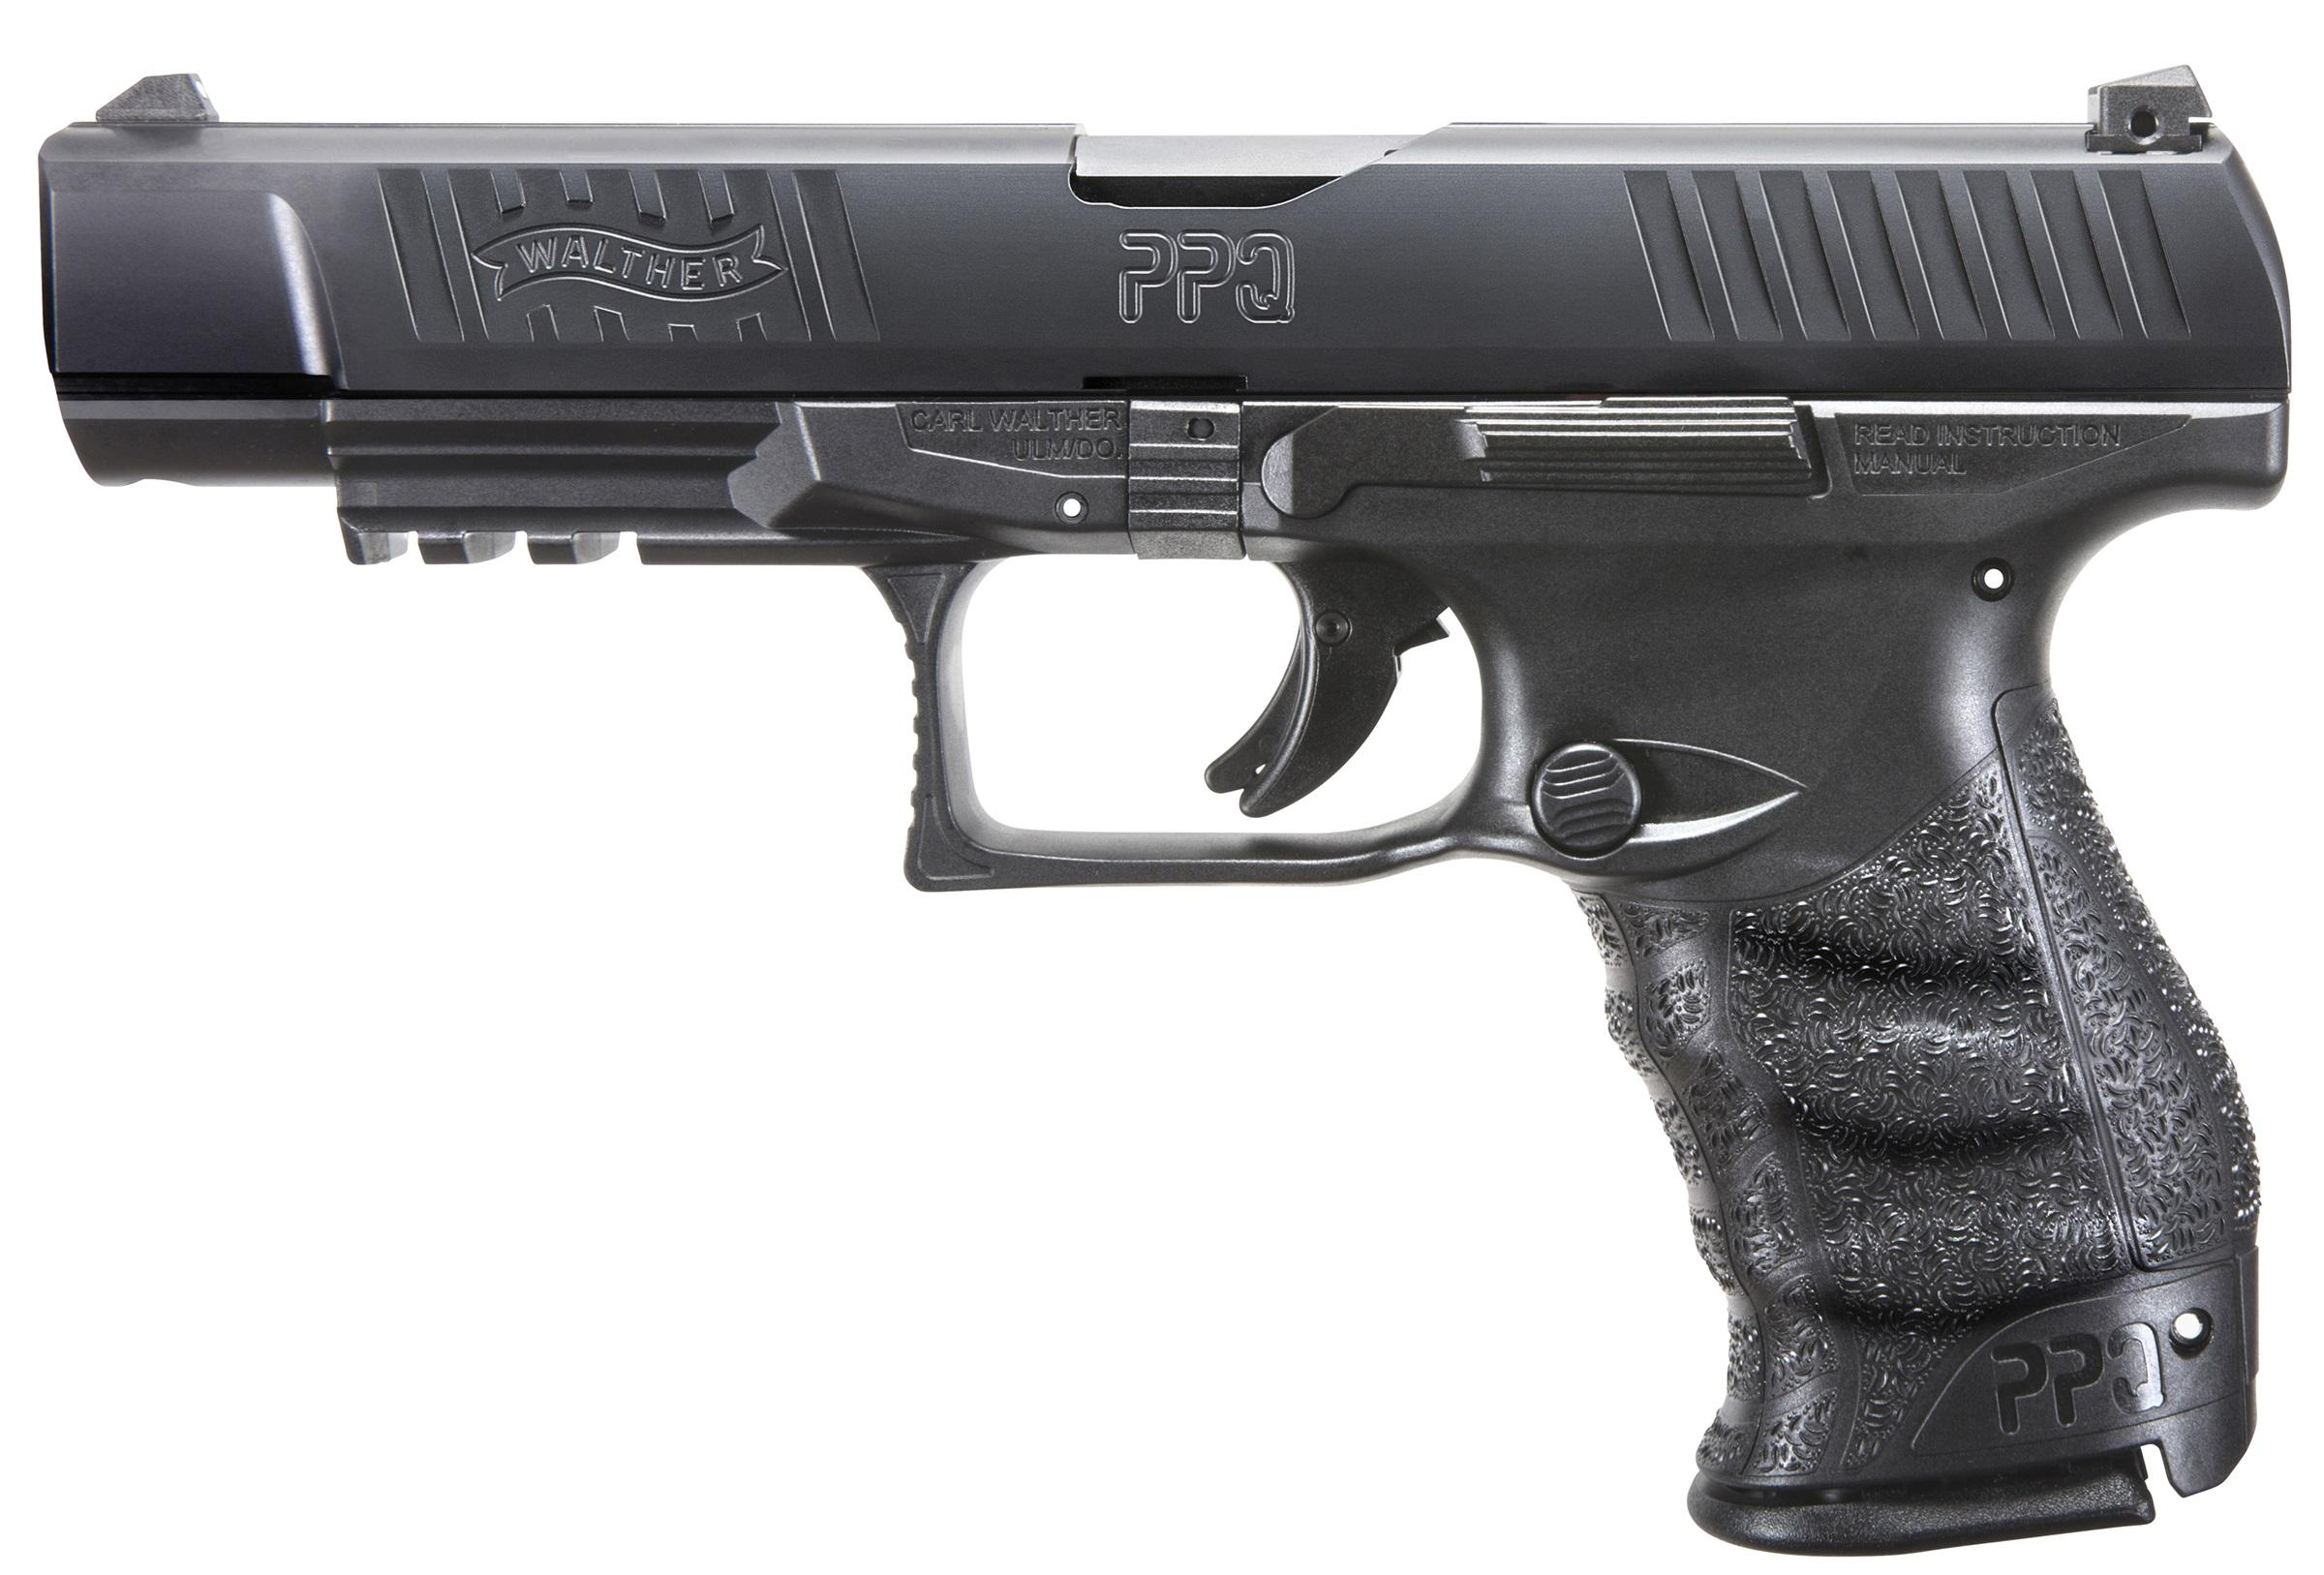 PPQ M2 9MM BLACK 10+1 5 - 2851091  STANDARD MAG RELEASE